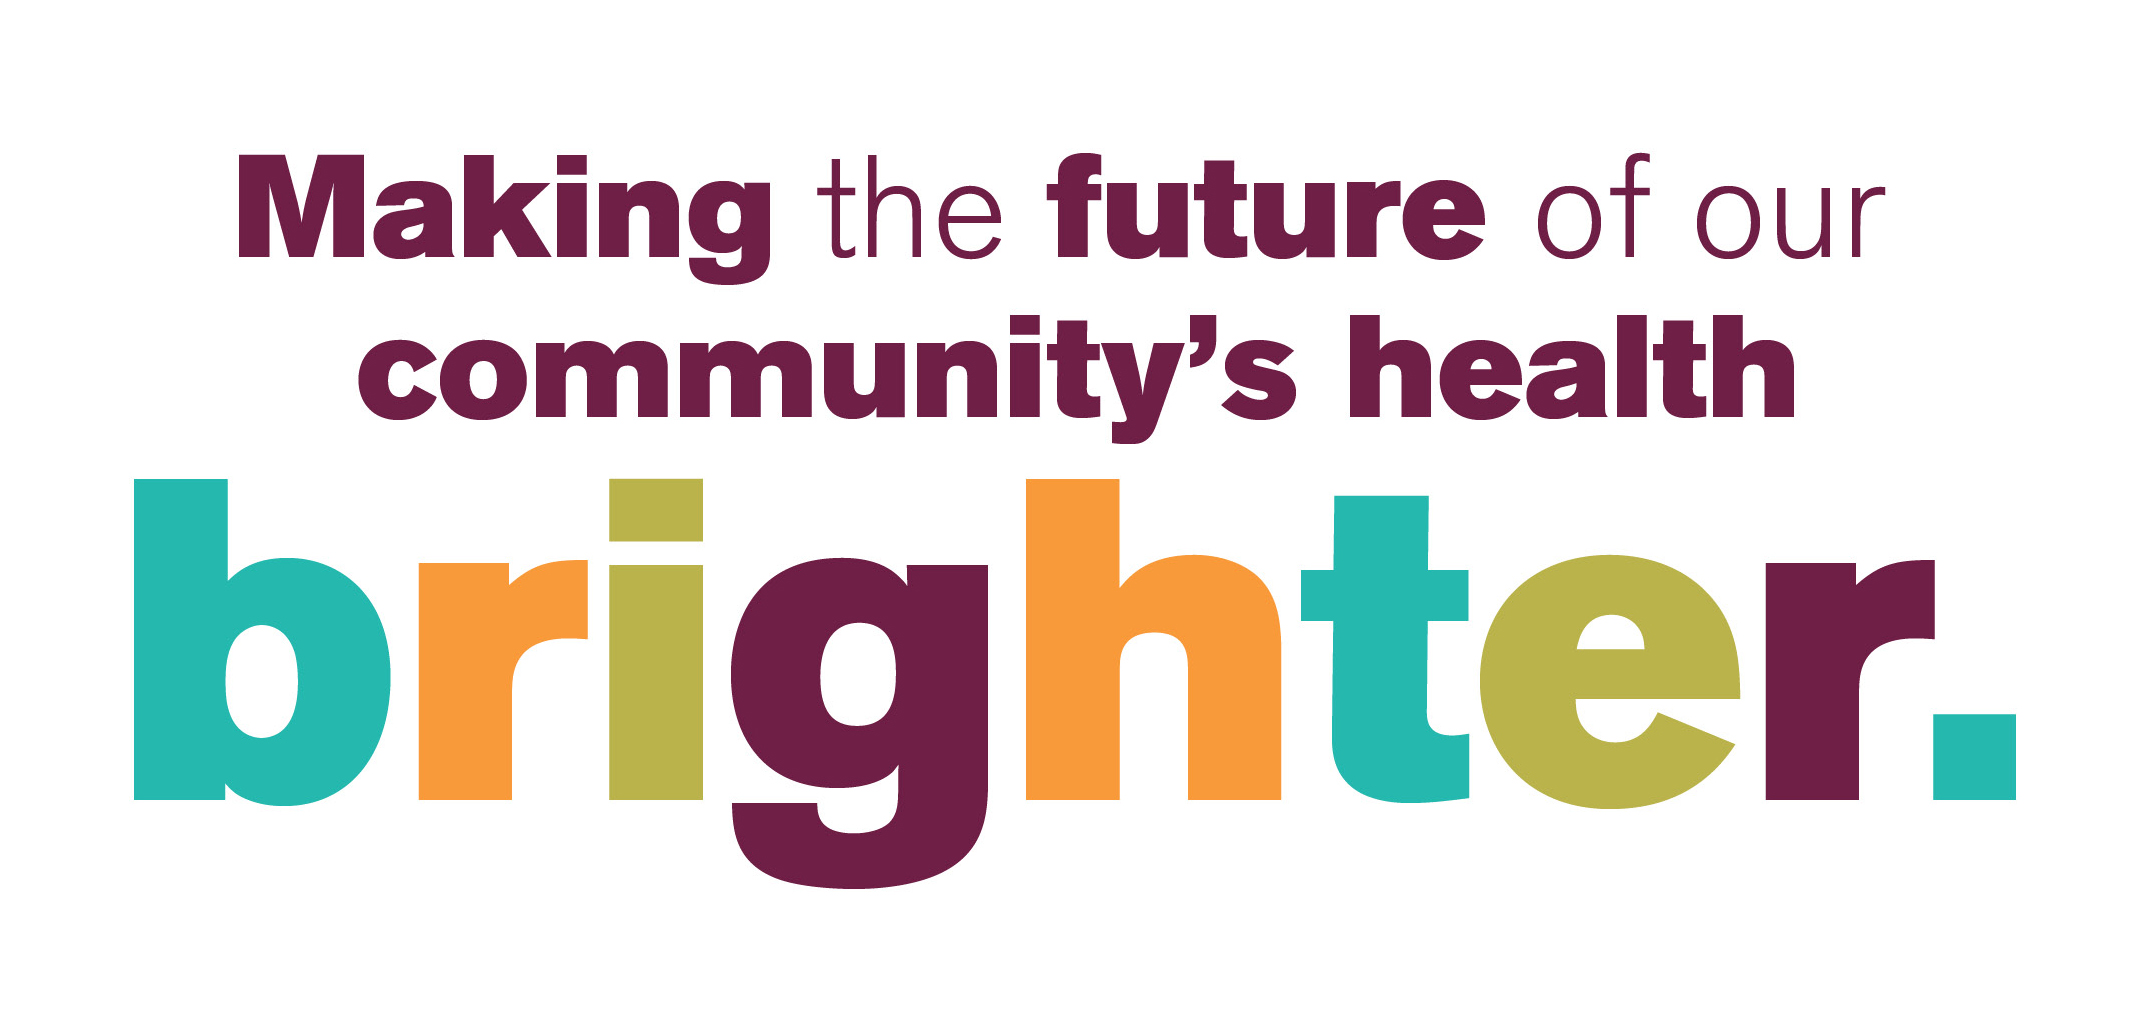 Making the future of our community's health brighter.